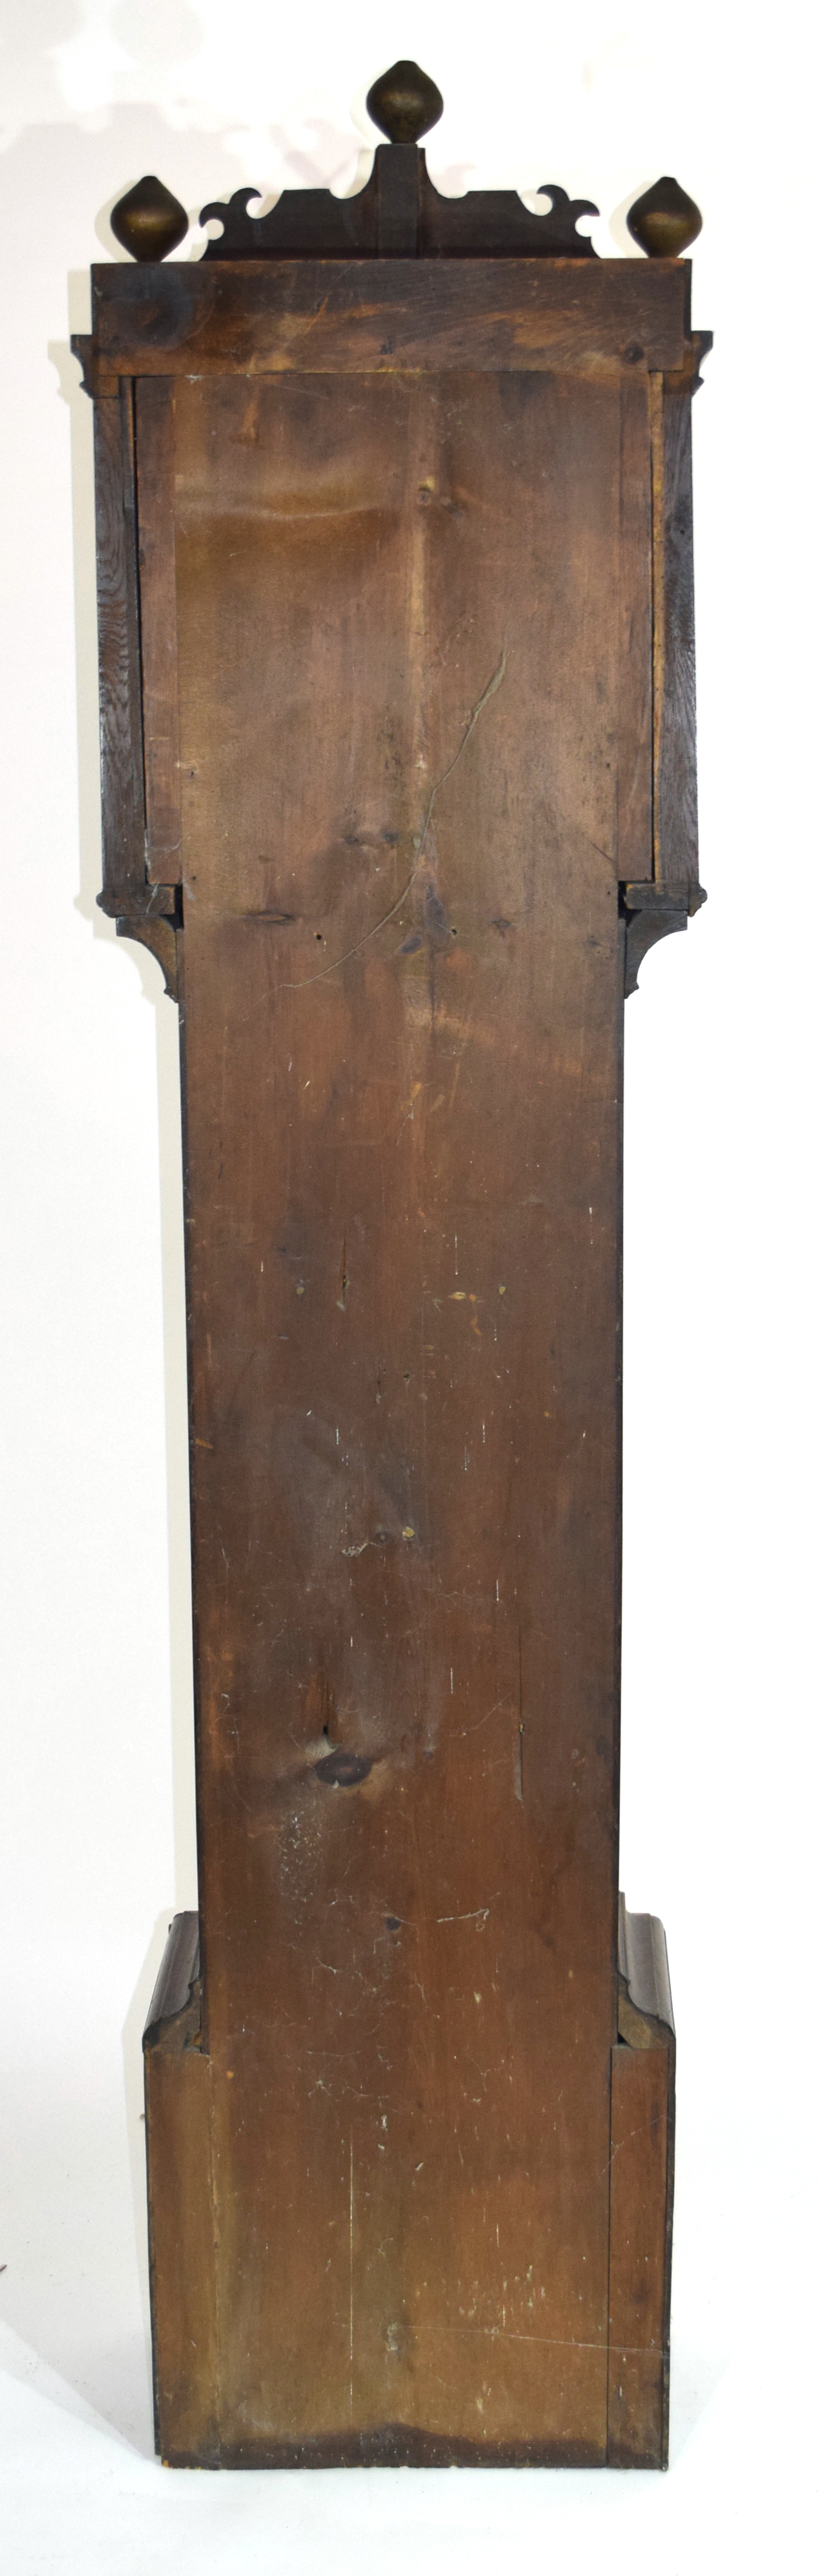 William Nash, Bridge, (Kent) 18th century oak cased longcase clock, the brass and silvered face with - Image 4 of 4